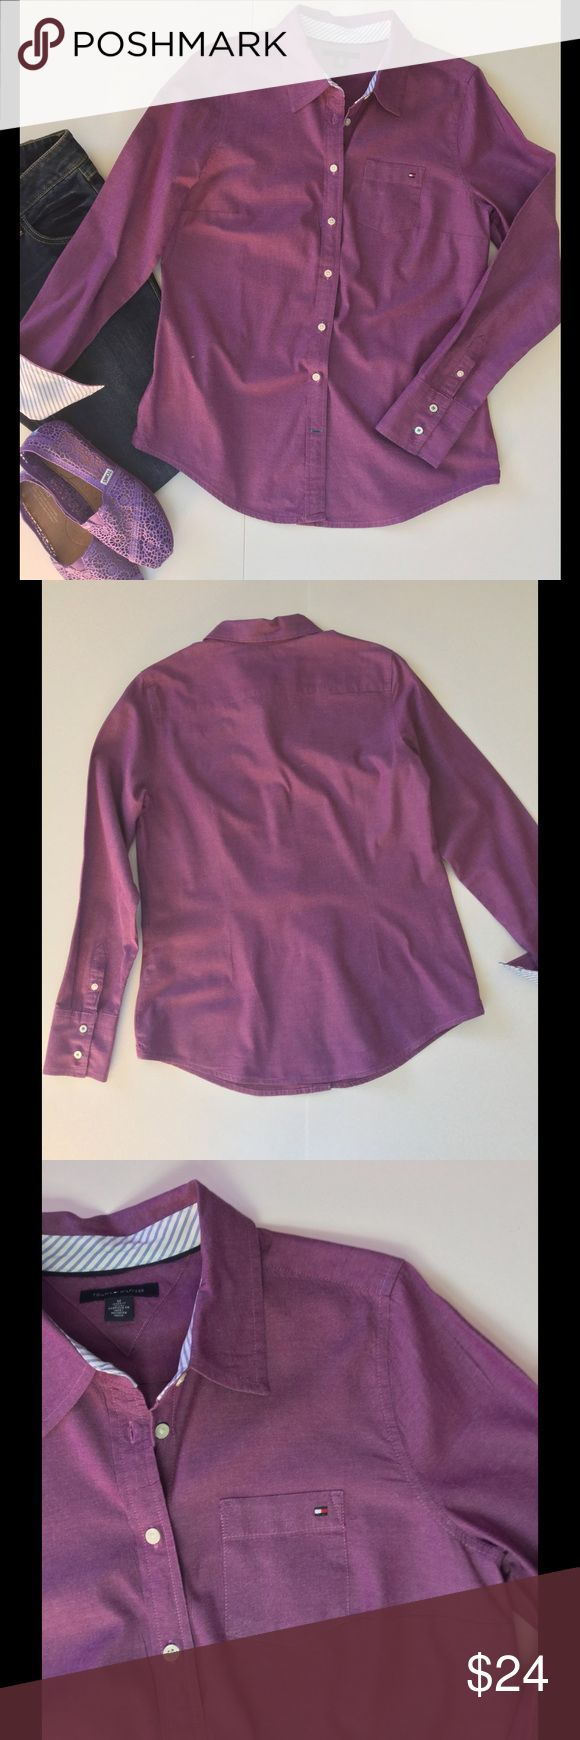 """🆕 Listing Hilfiger Button Up Shirt This must have Tommy Hilfier shirt is a beautiful shade of purple with blue striped cuffs and neckline. Excellent pre-owned condition. No damage. 100% cotton. Machine wash. 38"""" bust 37"""" waist 24"""" length from shoulder to shortest part of shirttail. Pictured shoes and jeans are listed separately  🎀Bundle discount  ⭐️5 star rated Suggested User 🚭Smoke free home 🚫No trades please  😍 Thank you for shopping with me. Please ask all questions before purchase…"""